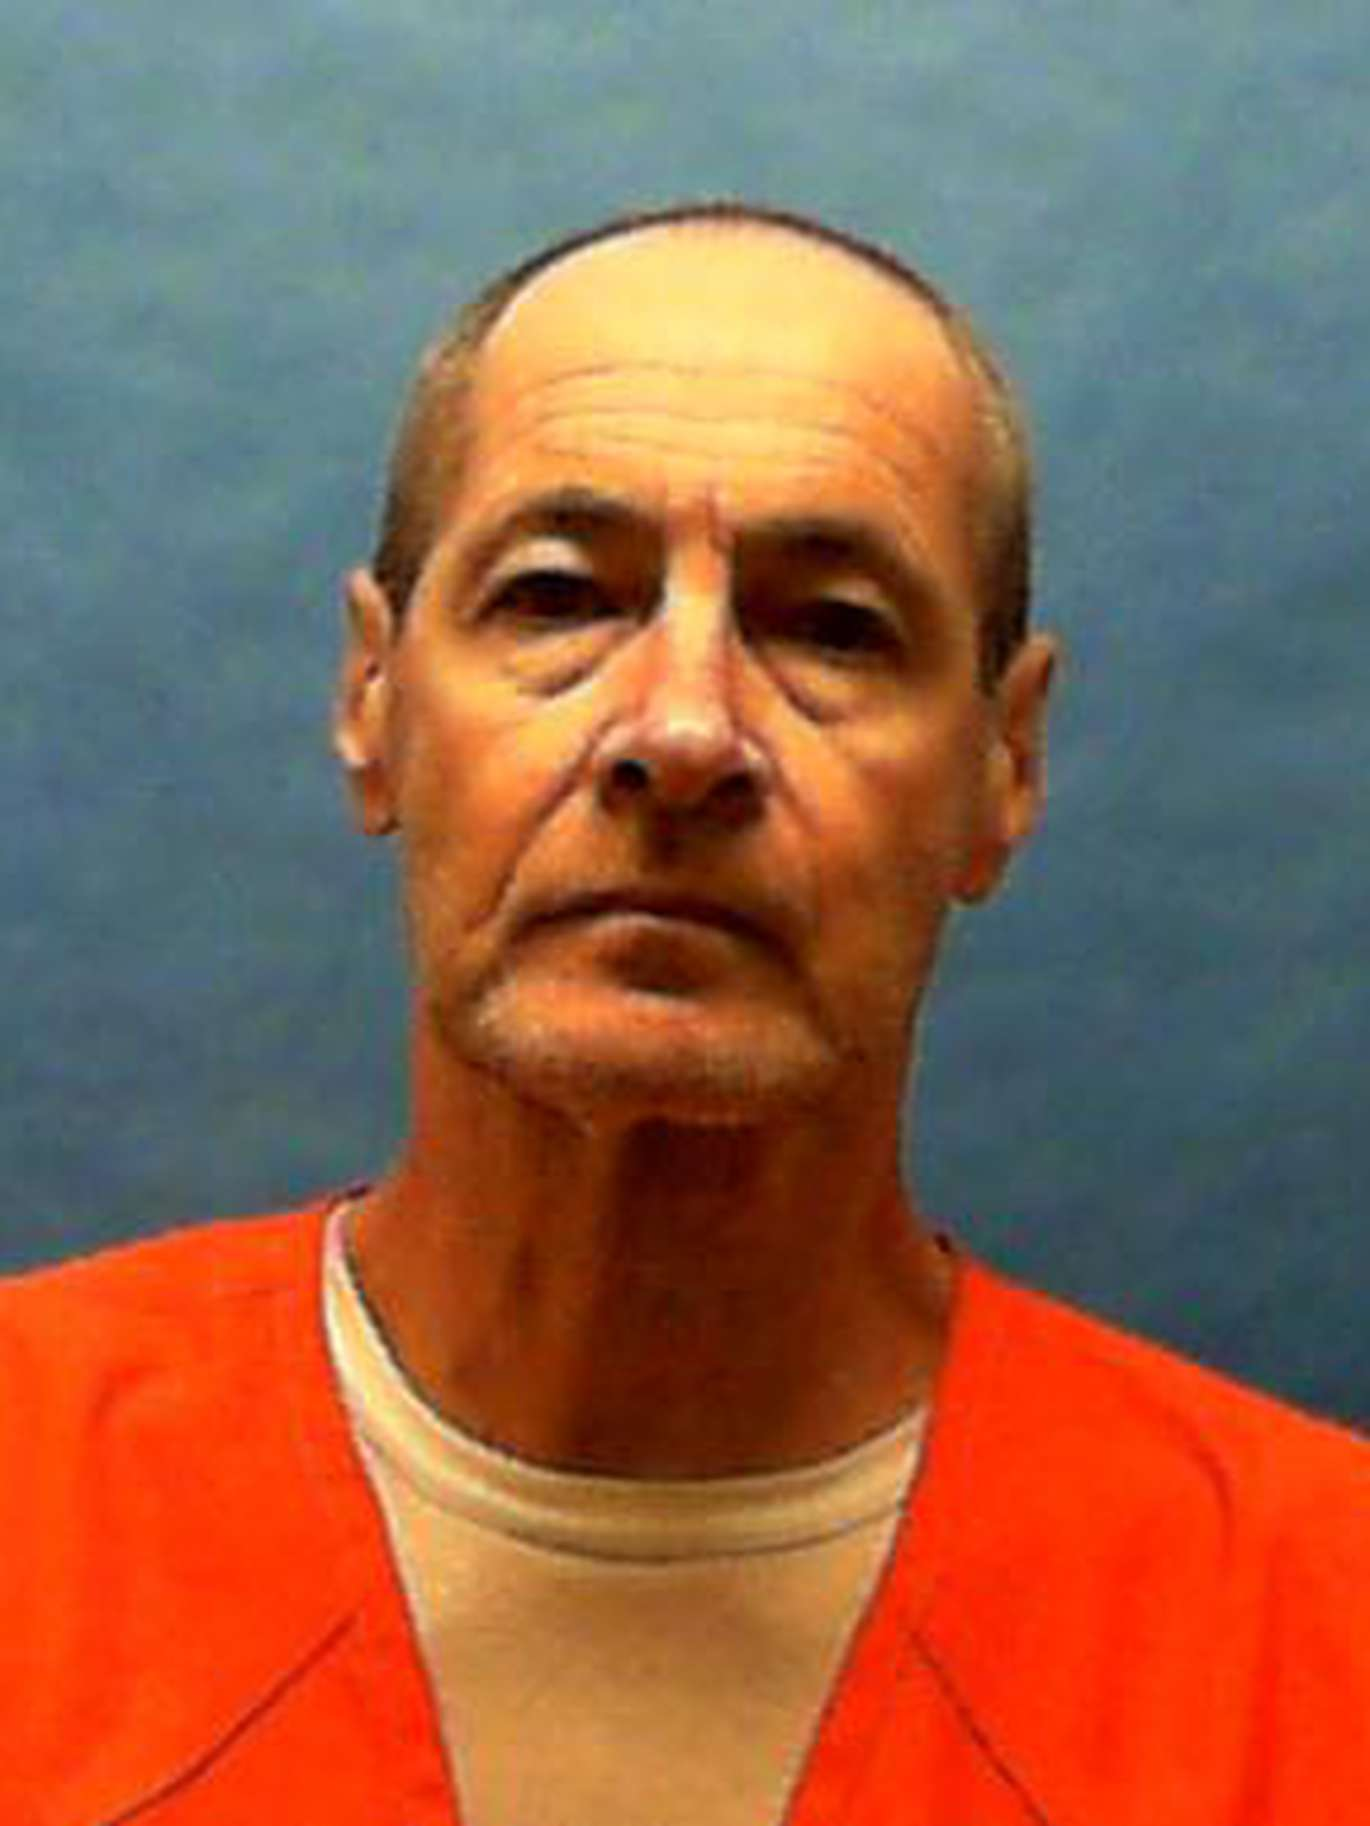 In 2004, William Taylor was given the death sentence for the 2001 murder of Sandra Kushmer, a old school friend. He's been on death row since October 2004.